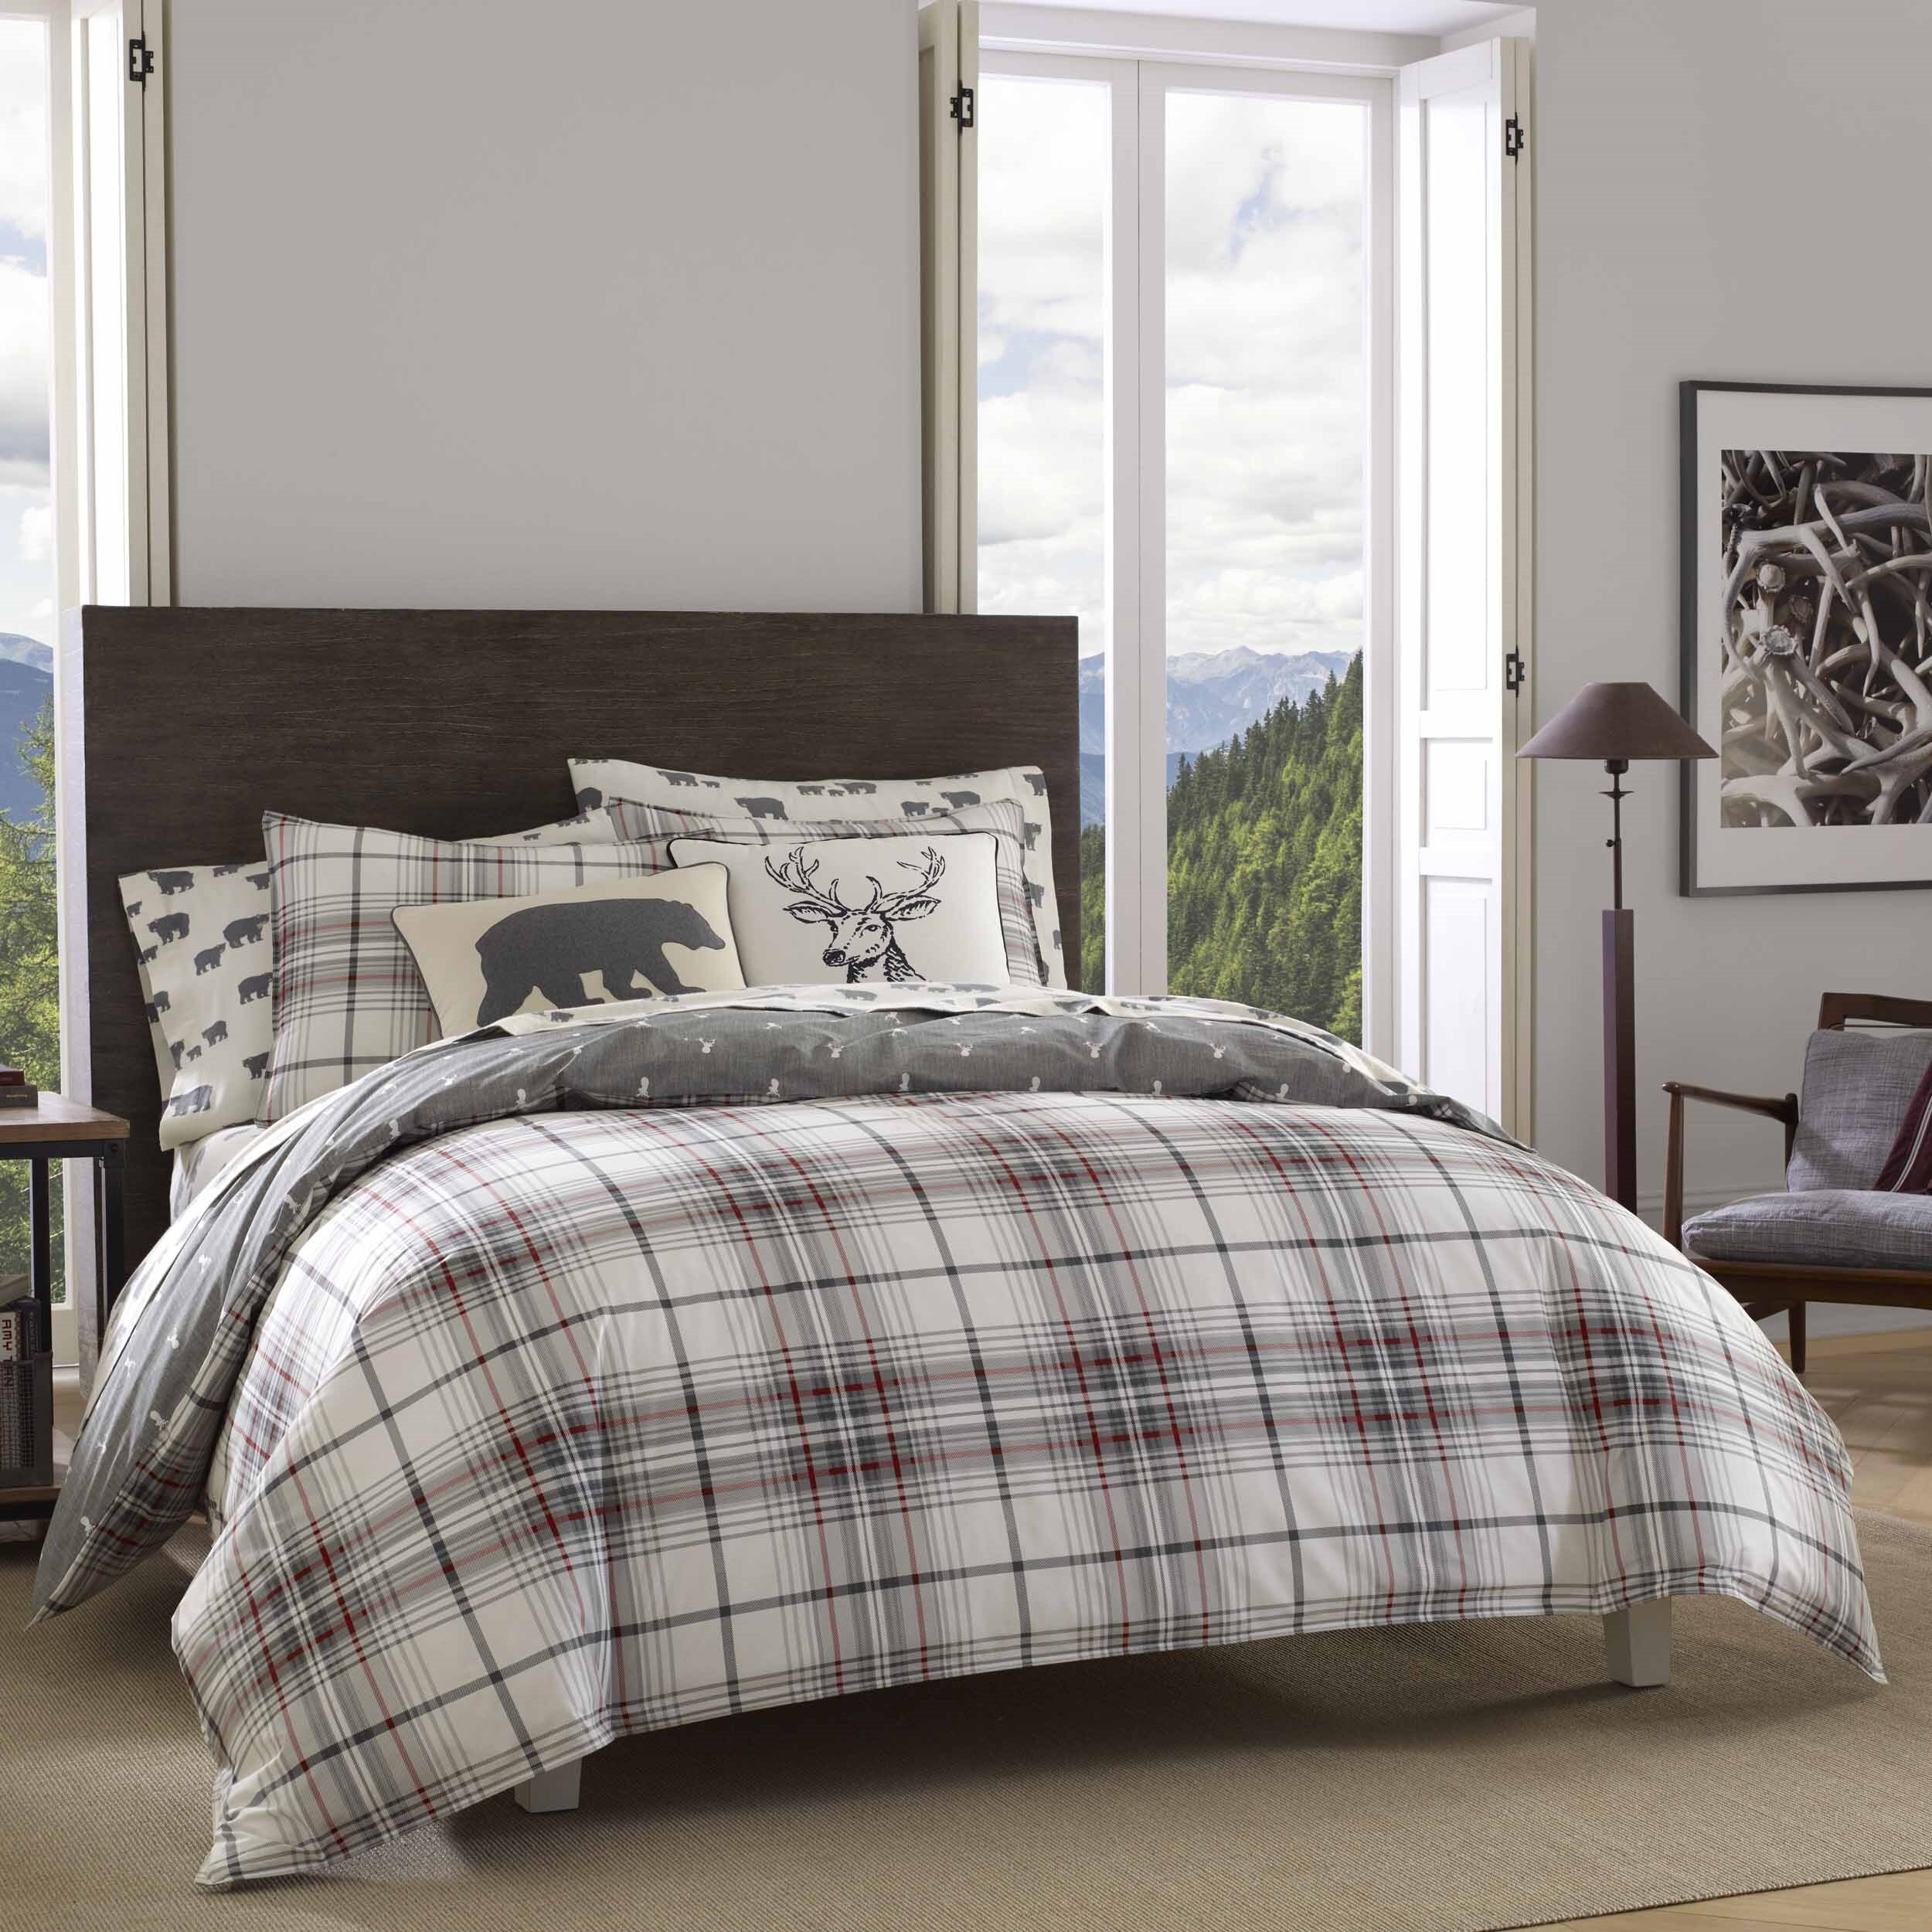 full bedroom of black bedding nz cheap king inexpensive flower canada off navy single quilt covers plain argos duvets doona info grey oversized cute comforter sets blue cover set duvet solpool double mens white queen size cotton